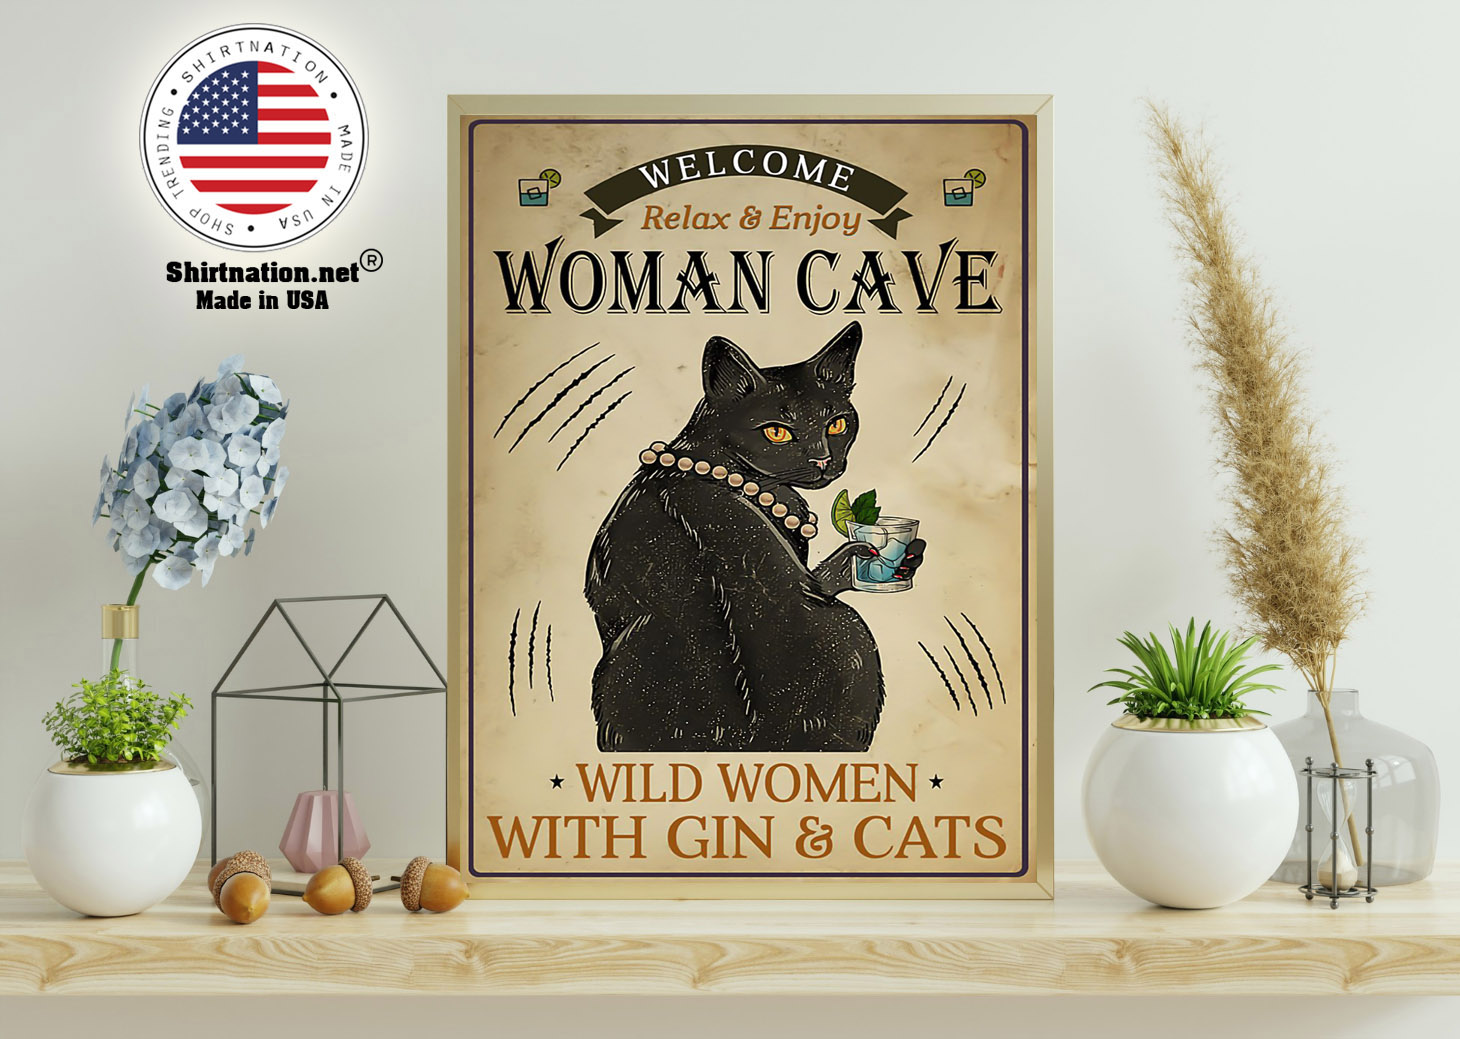 Welcome relax enjoy woman cave will women with gin and cats poster 11